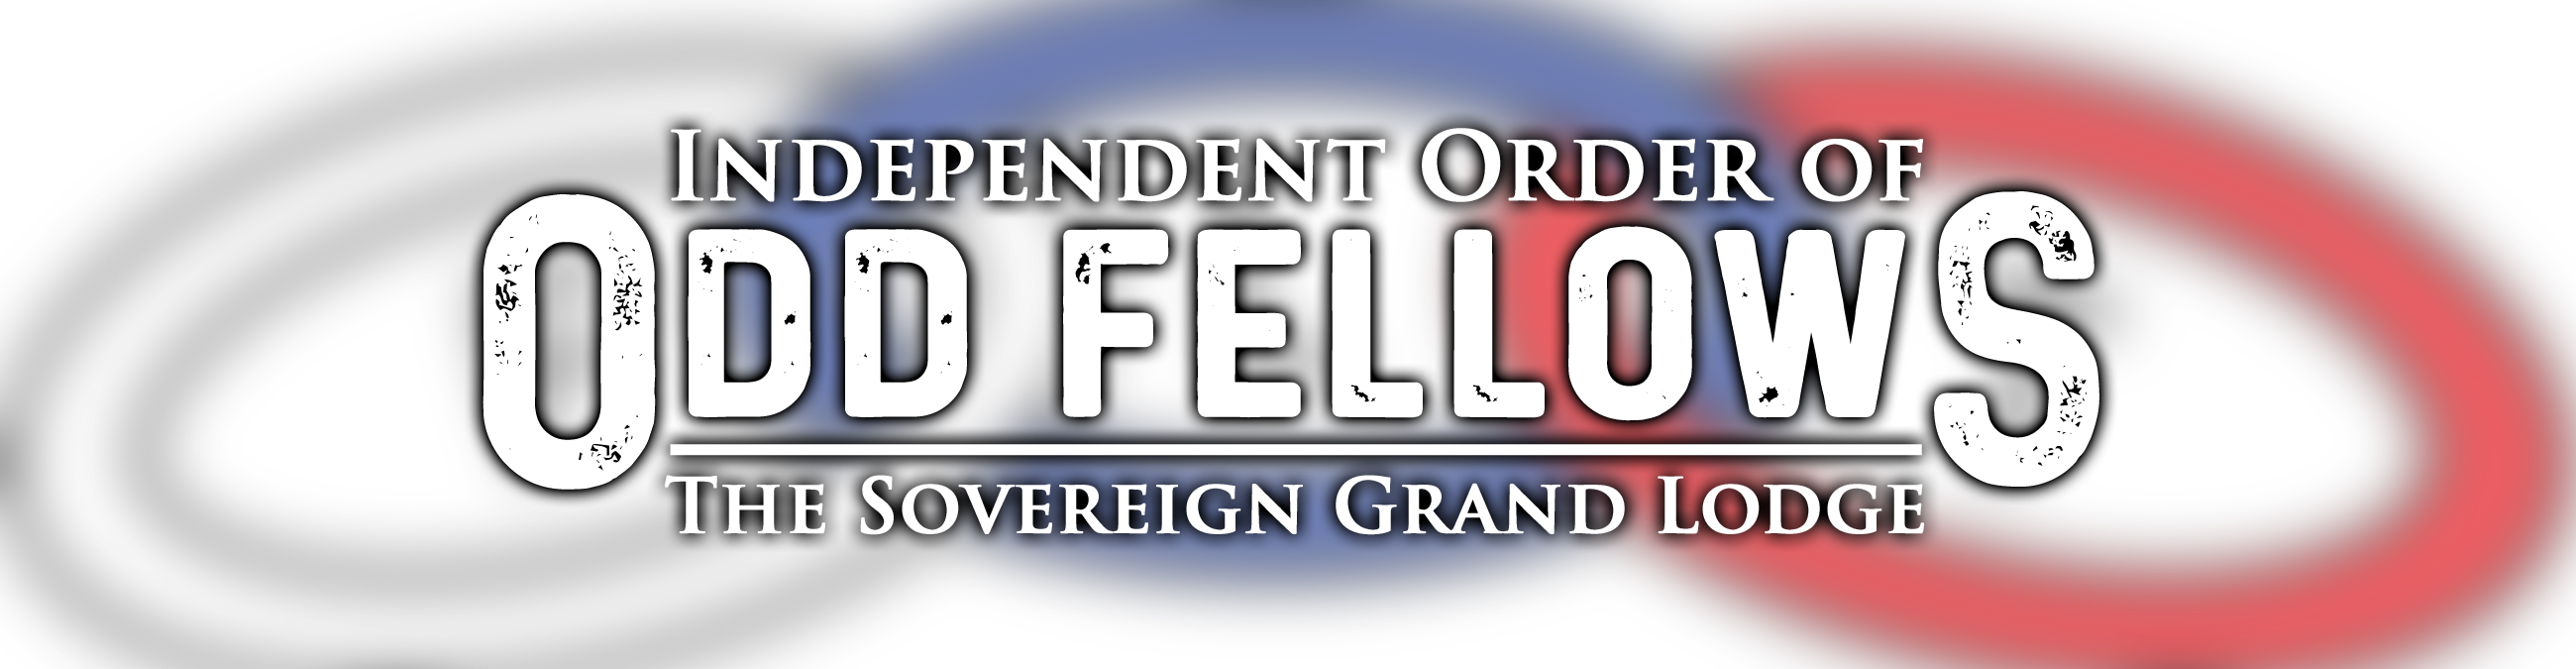 Independent Order Of Odd Fellows The Sovereign Grand Lodge